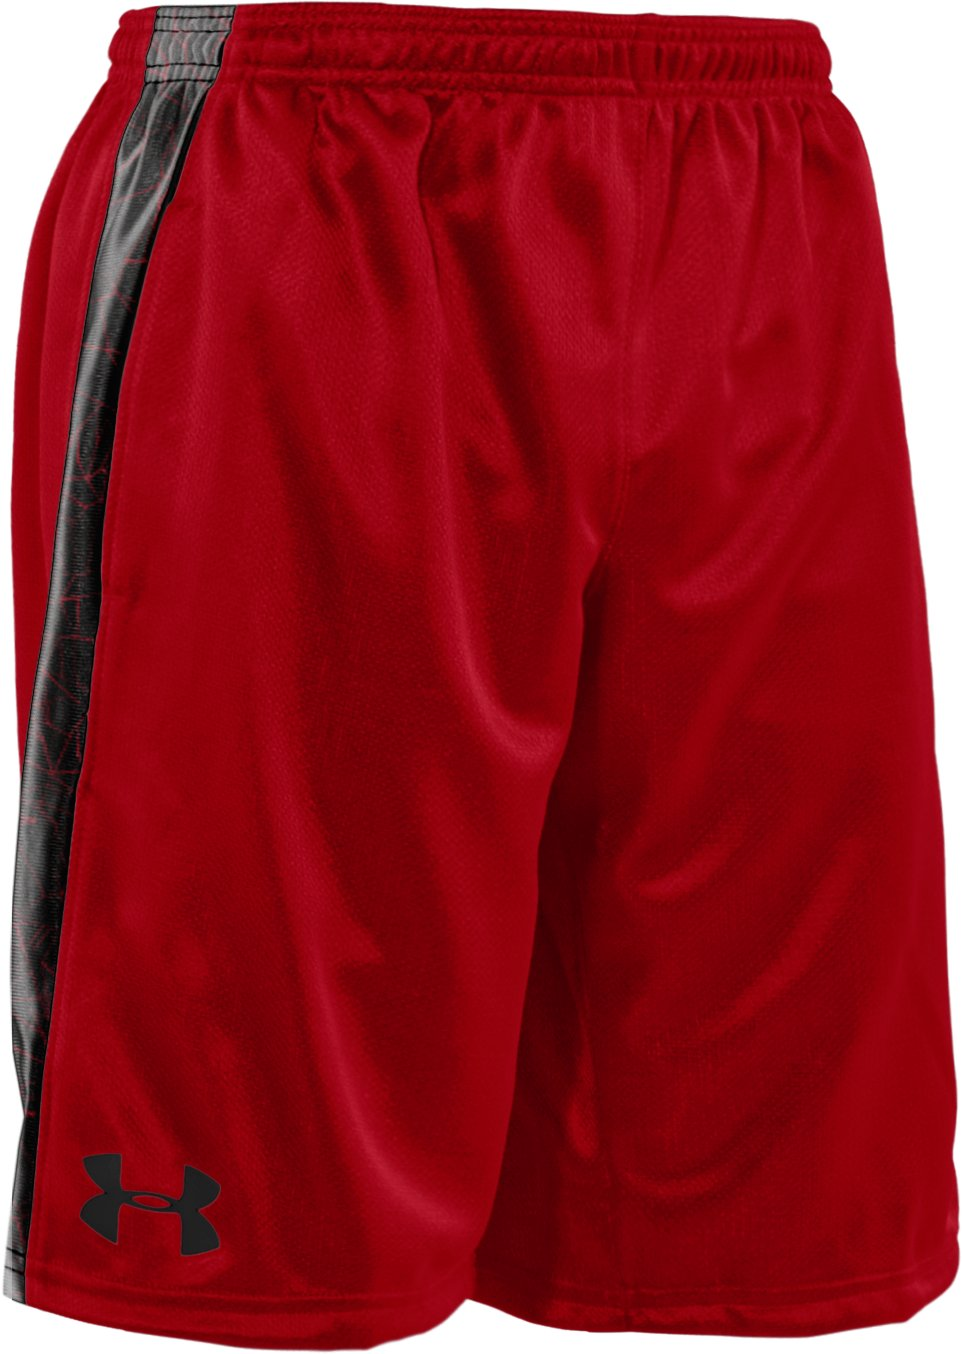 "Boys' UA Ultimate Printed 9"" Shorts, Red"